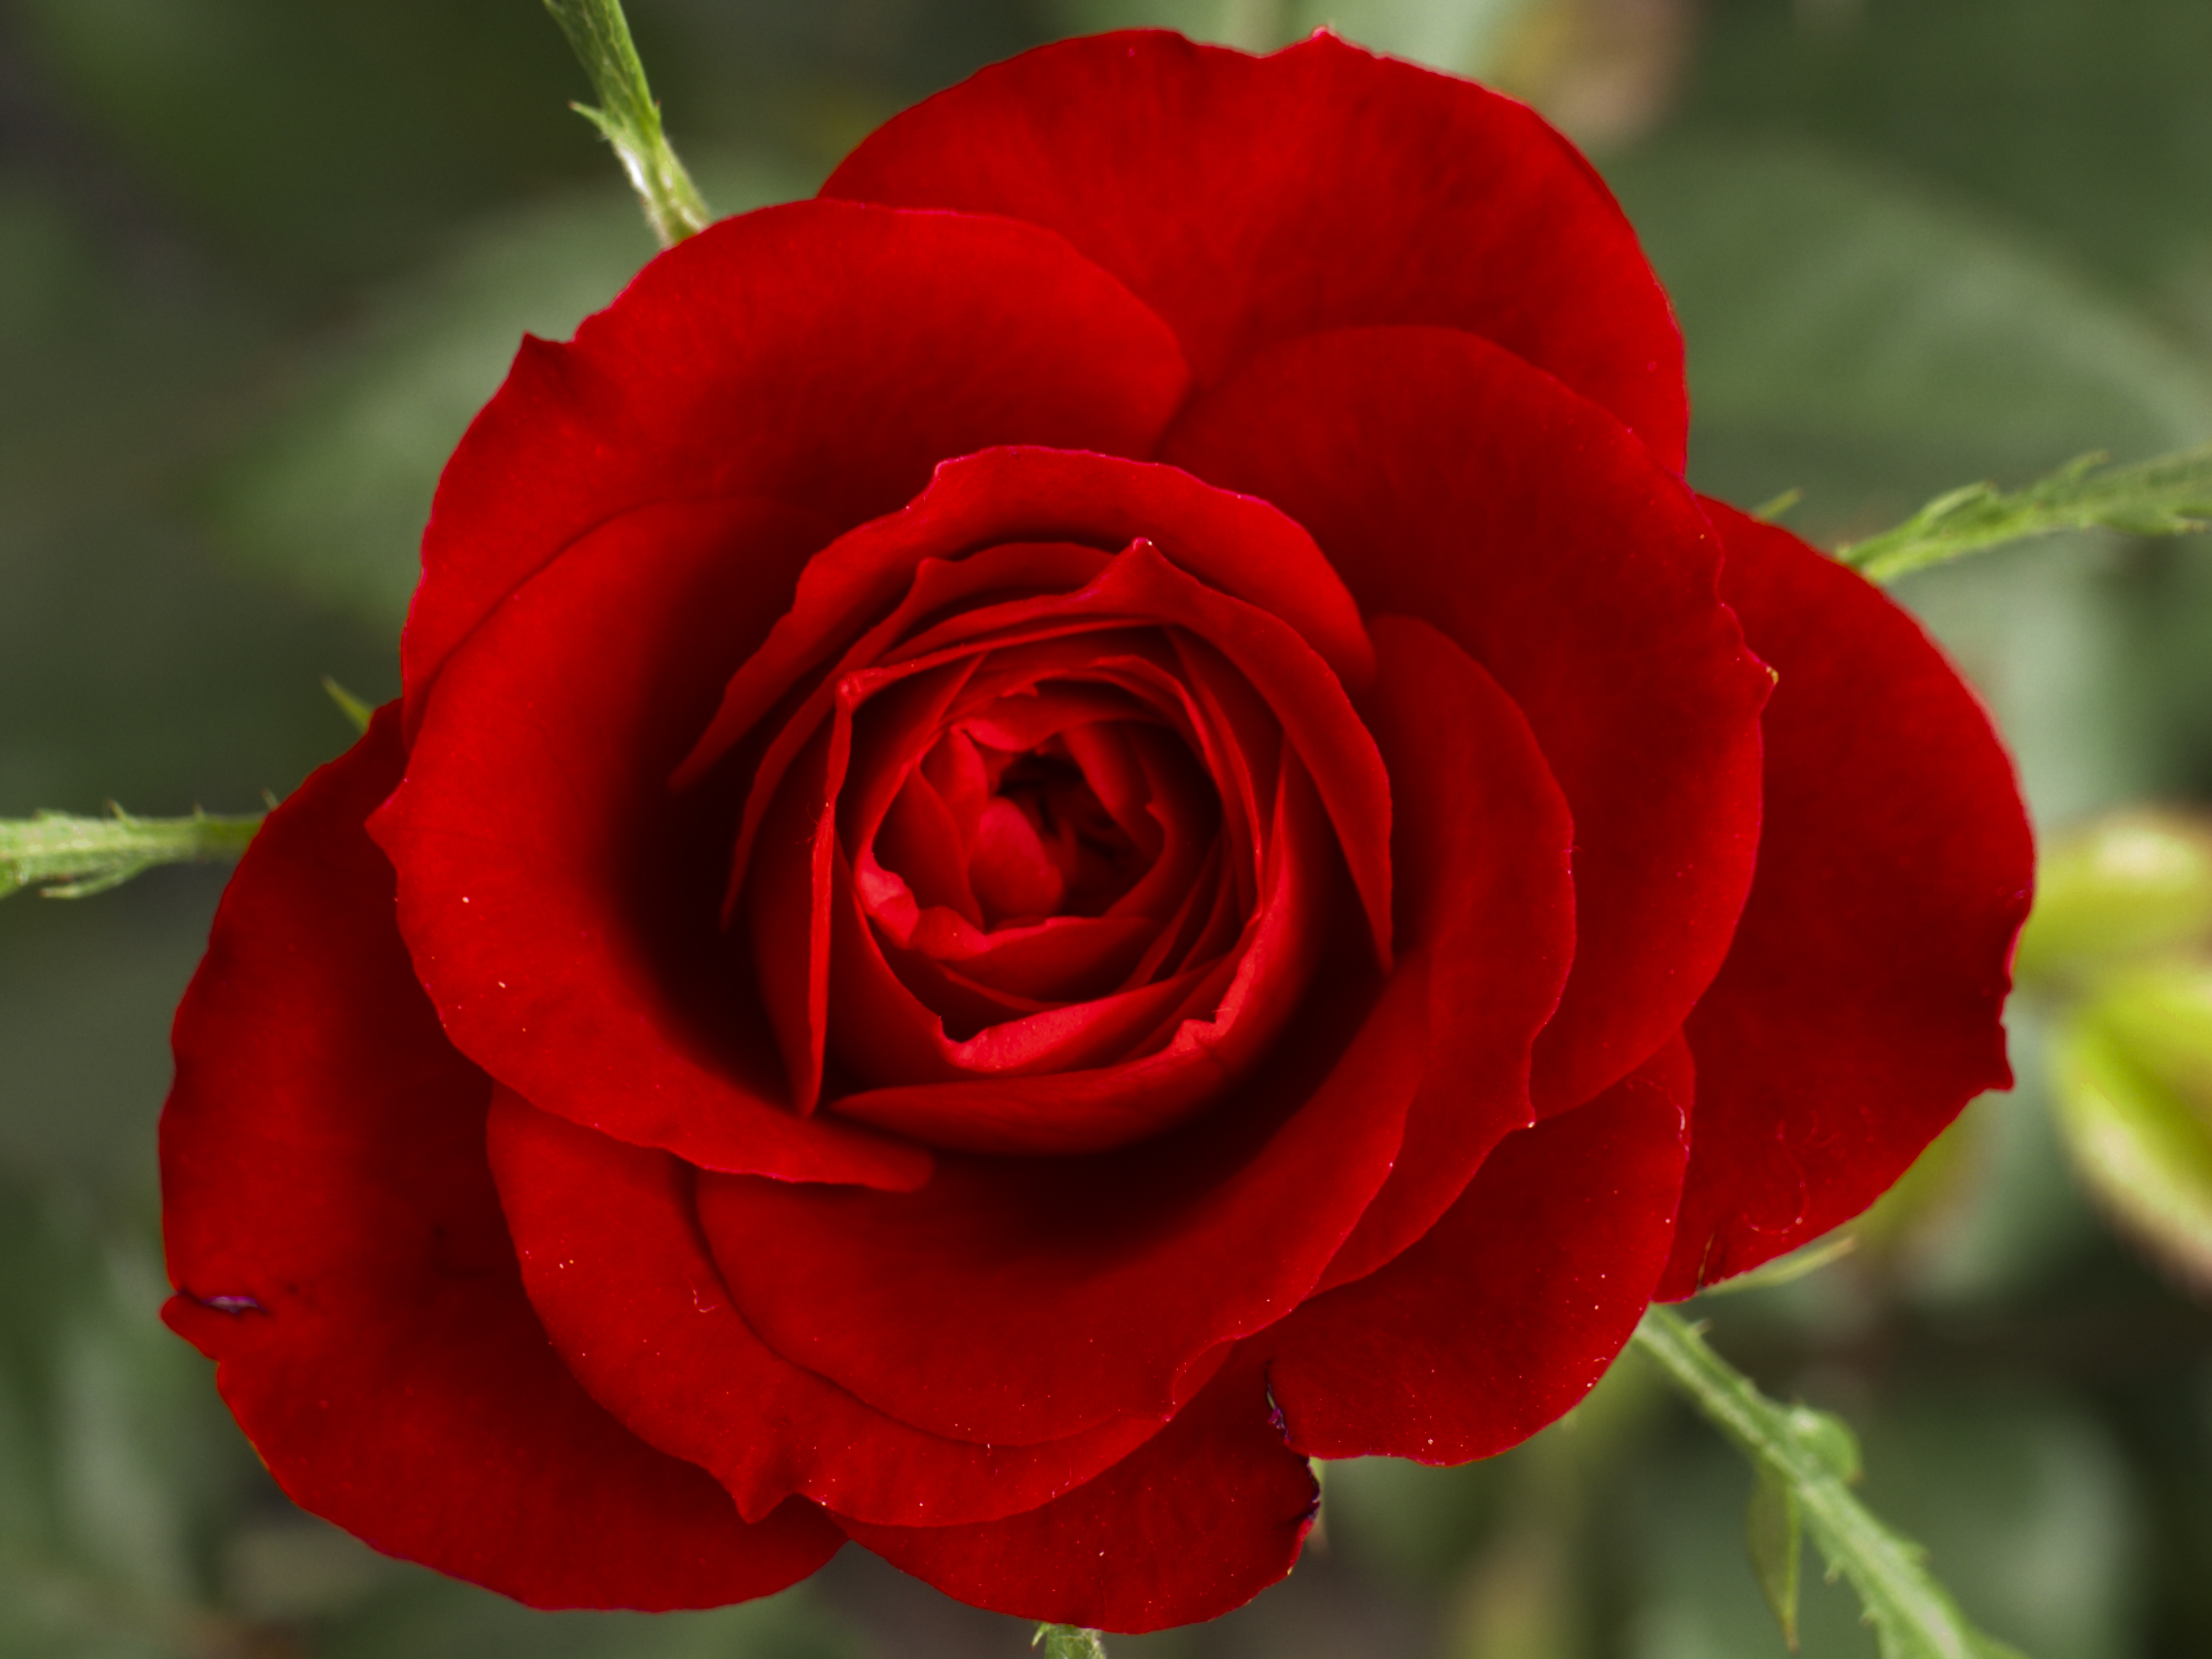 Image De Rose File Small Red Rose Jpg Wikipedia